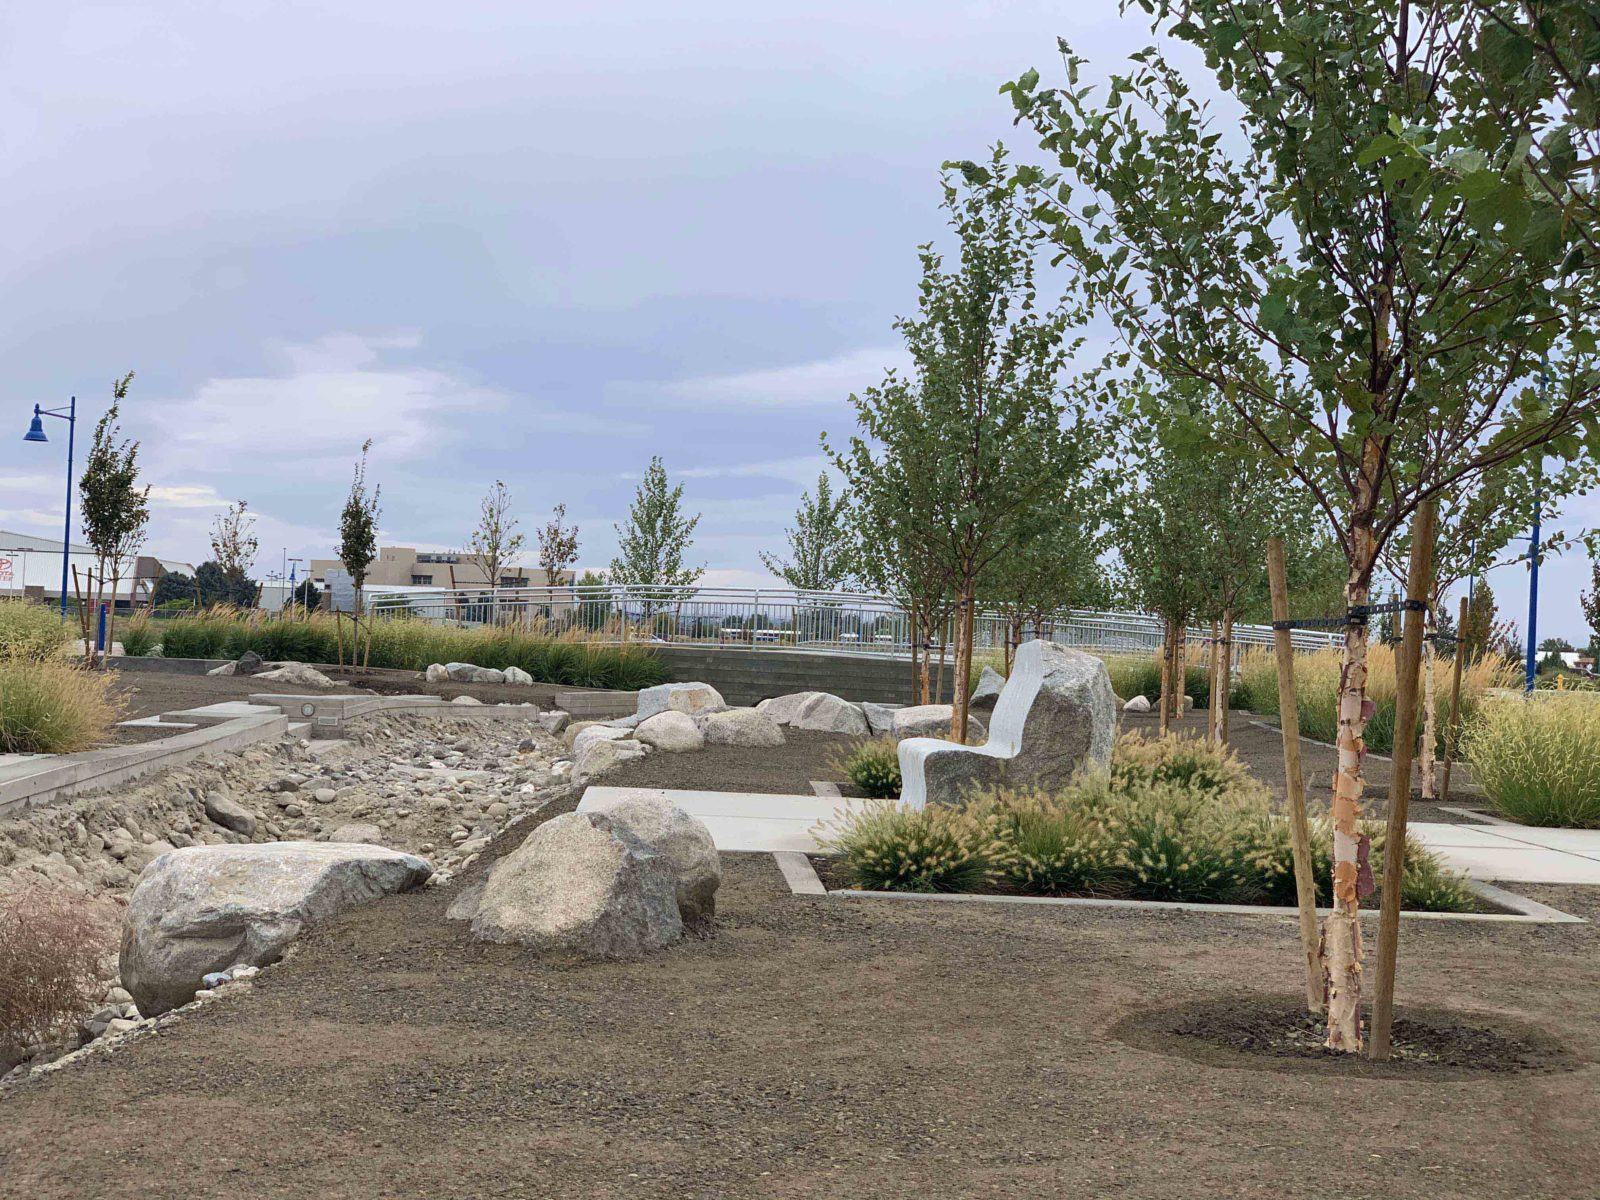 Trees, water feature, bench and bridge at Vista Field - phase one redevelopment.